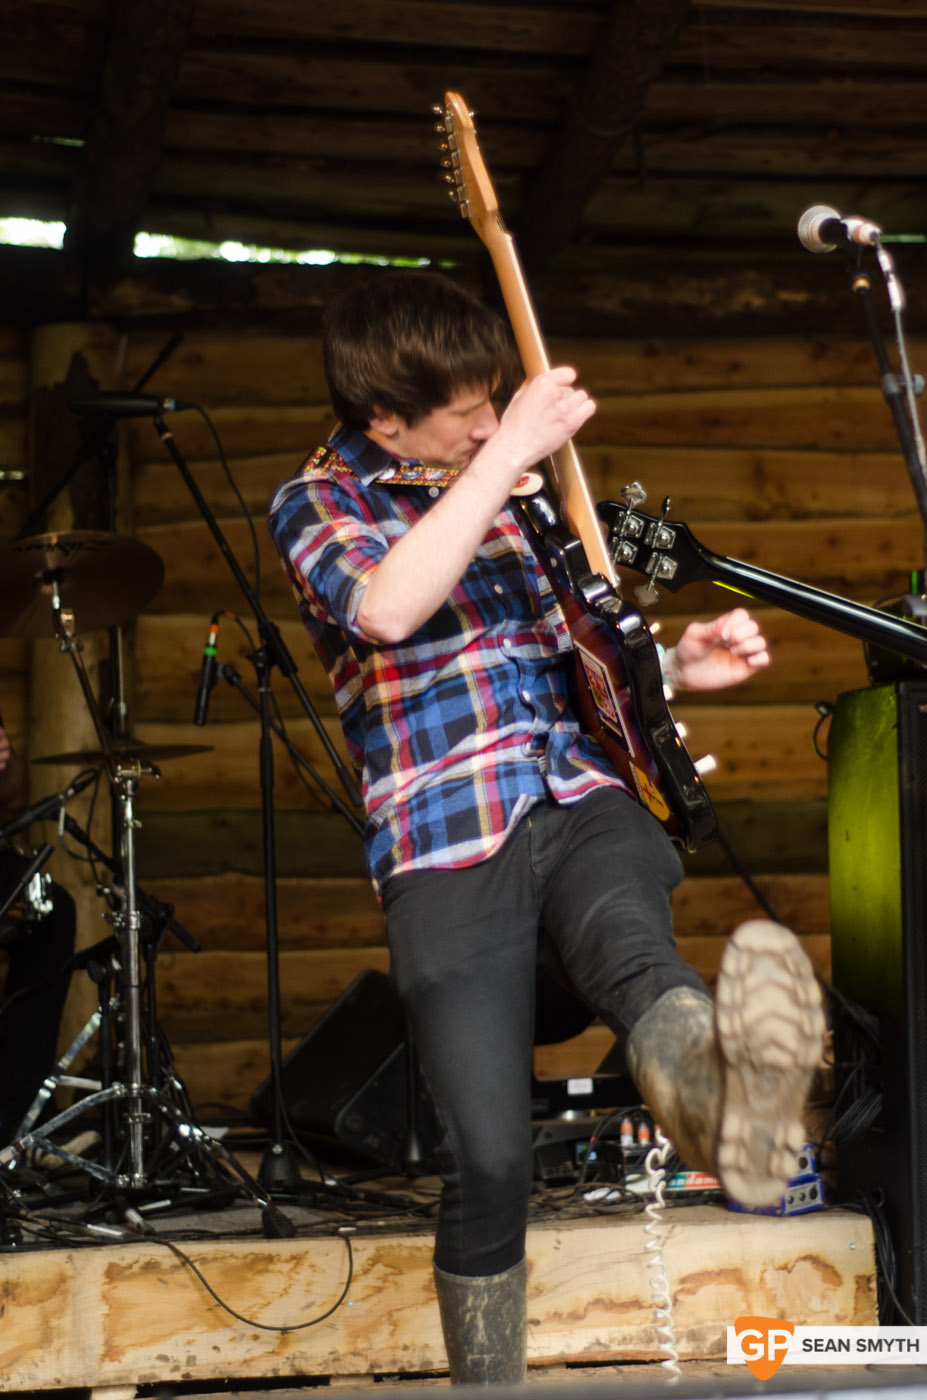 the-wood-burning-savages-sunday-at-vantastival-by-sean-smyth-1-5-14-25-of-49